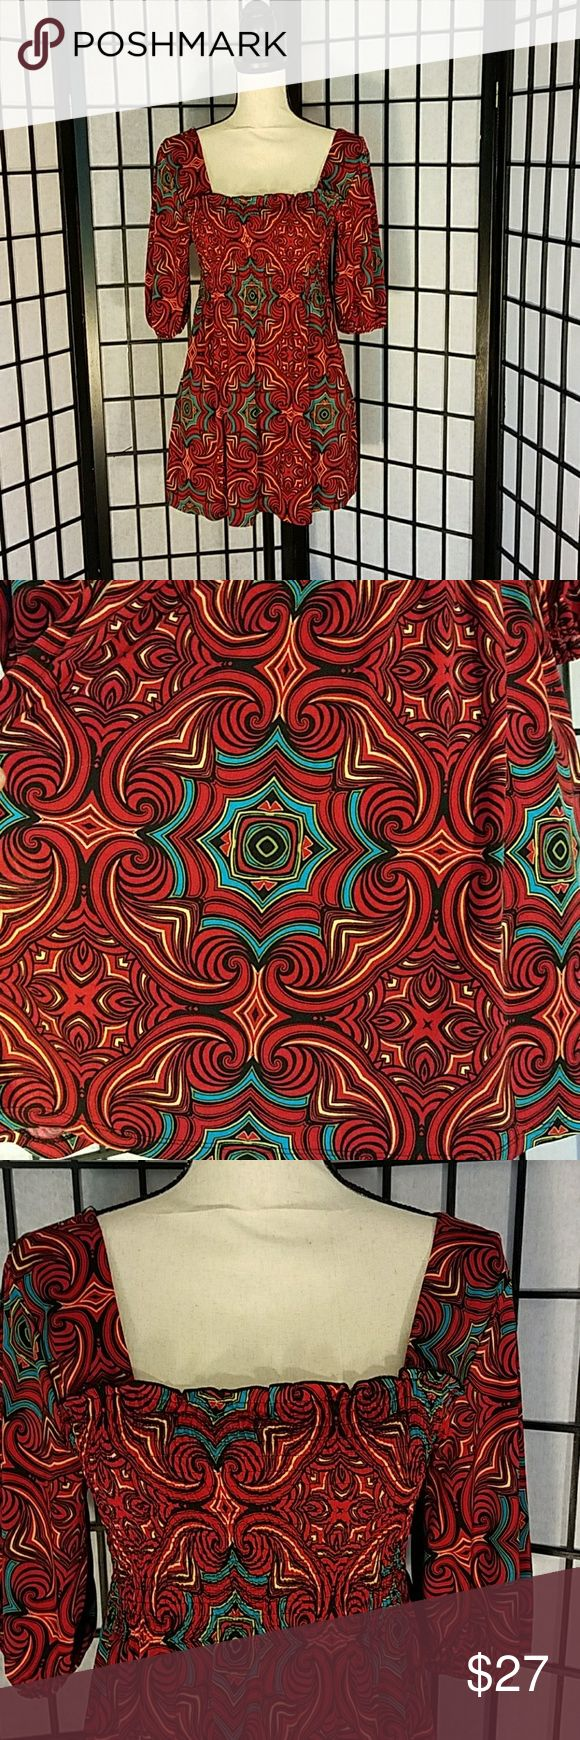 """Bisou Smocked Boho Mandala Mini Dress EUC This can be a mini dress or tunic, up to you and your length preference. Colors are red, yellow, green, blue, black and I swear I see some white in there. It's definitely a stand out pattern. 95% Polyester, 5% Spandex. It's smocked from bust to waist. Sleeves are 12 and half inches with elastic at the end. Armpit to armpit is 14"""", Length from bust line to Hem is 22 and half inches. Bisou Bisou Dresses Mini"""